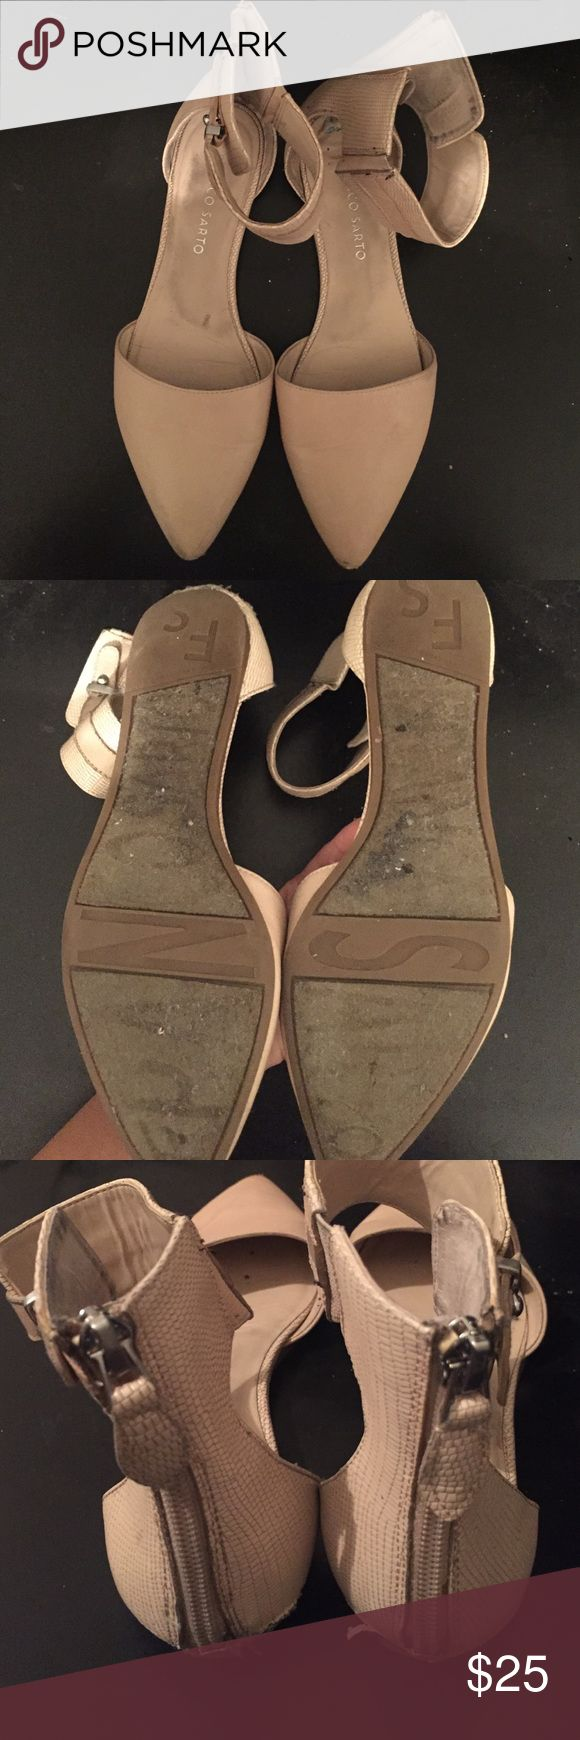 Pink/nude zip up flats Very comfortable- scuffing at tip of shoe Franco Sarto Shoes Flats & Loafers